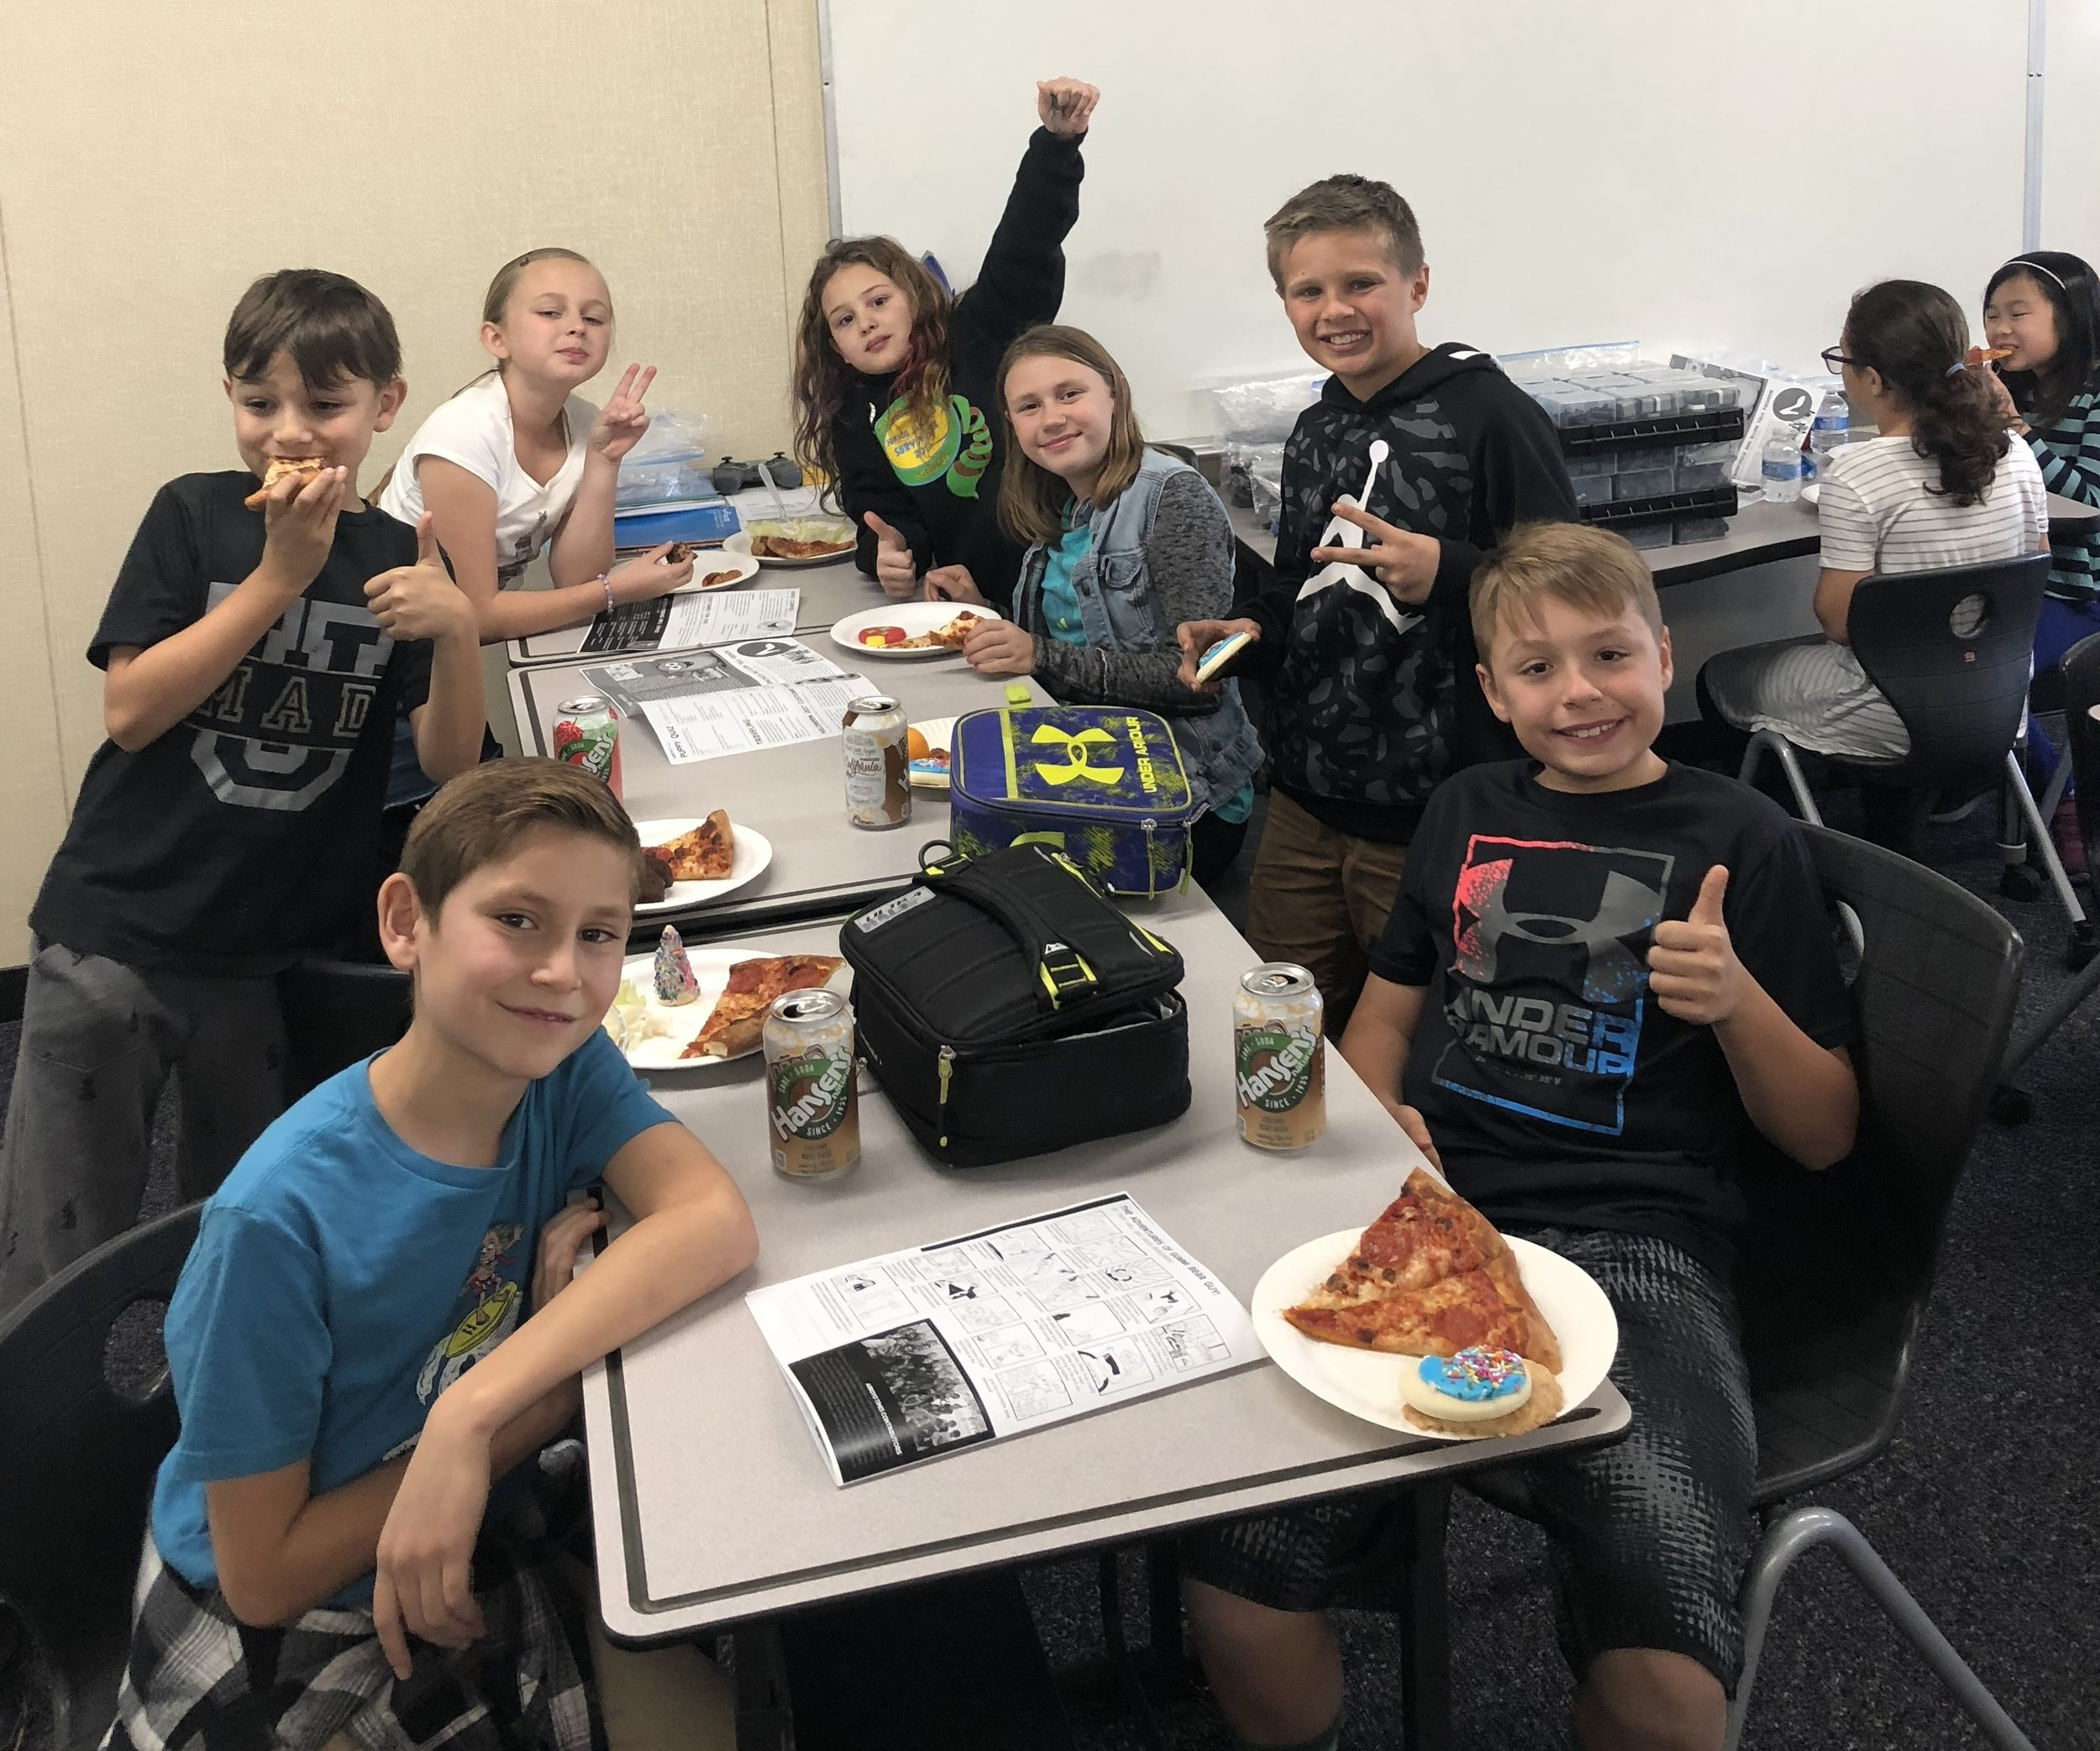 Arroyo times staff Celebrate their first issue of the year with a pizza party.